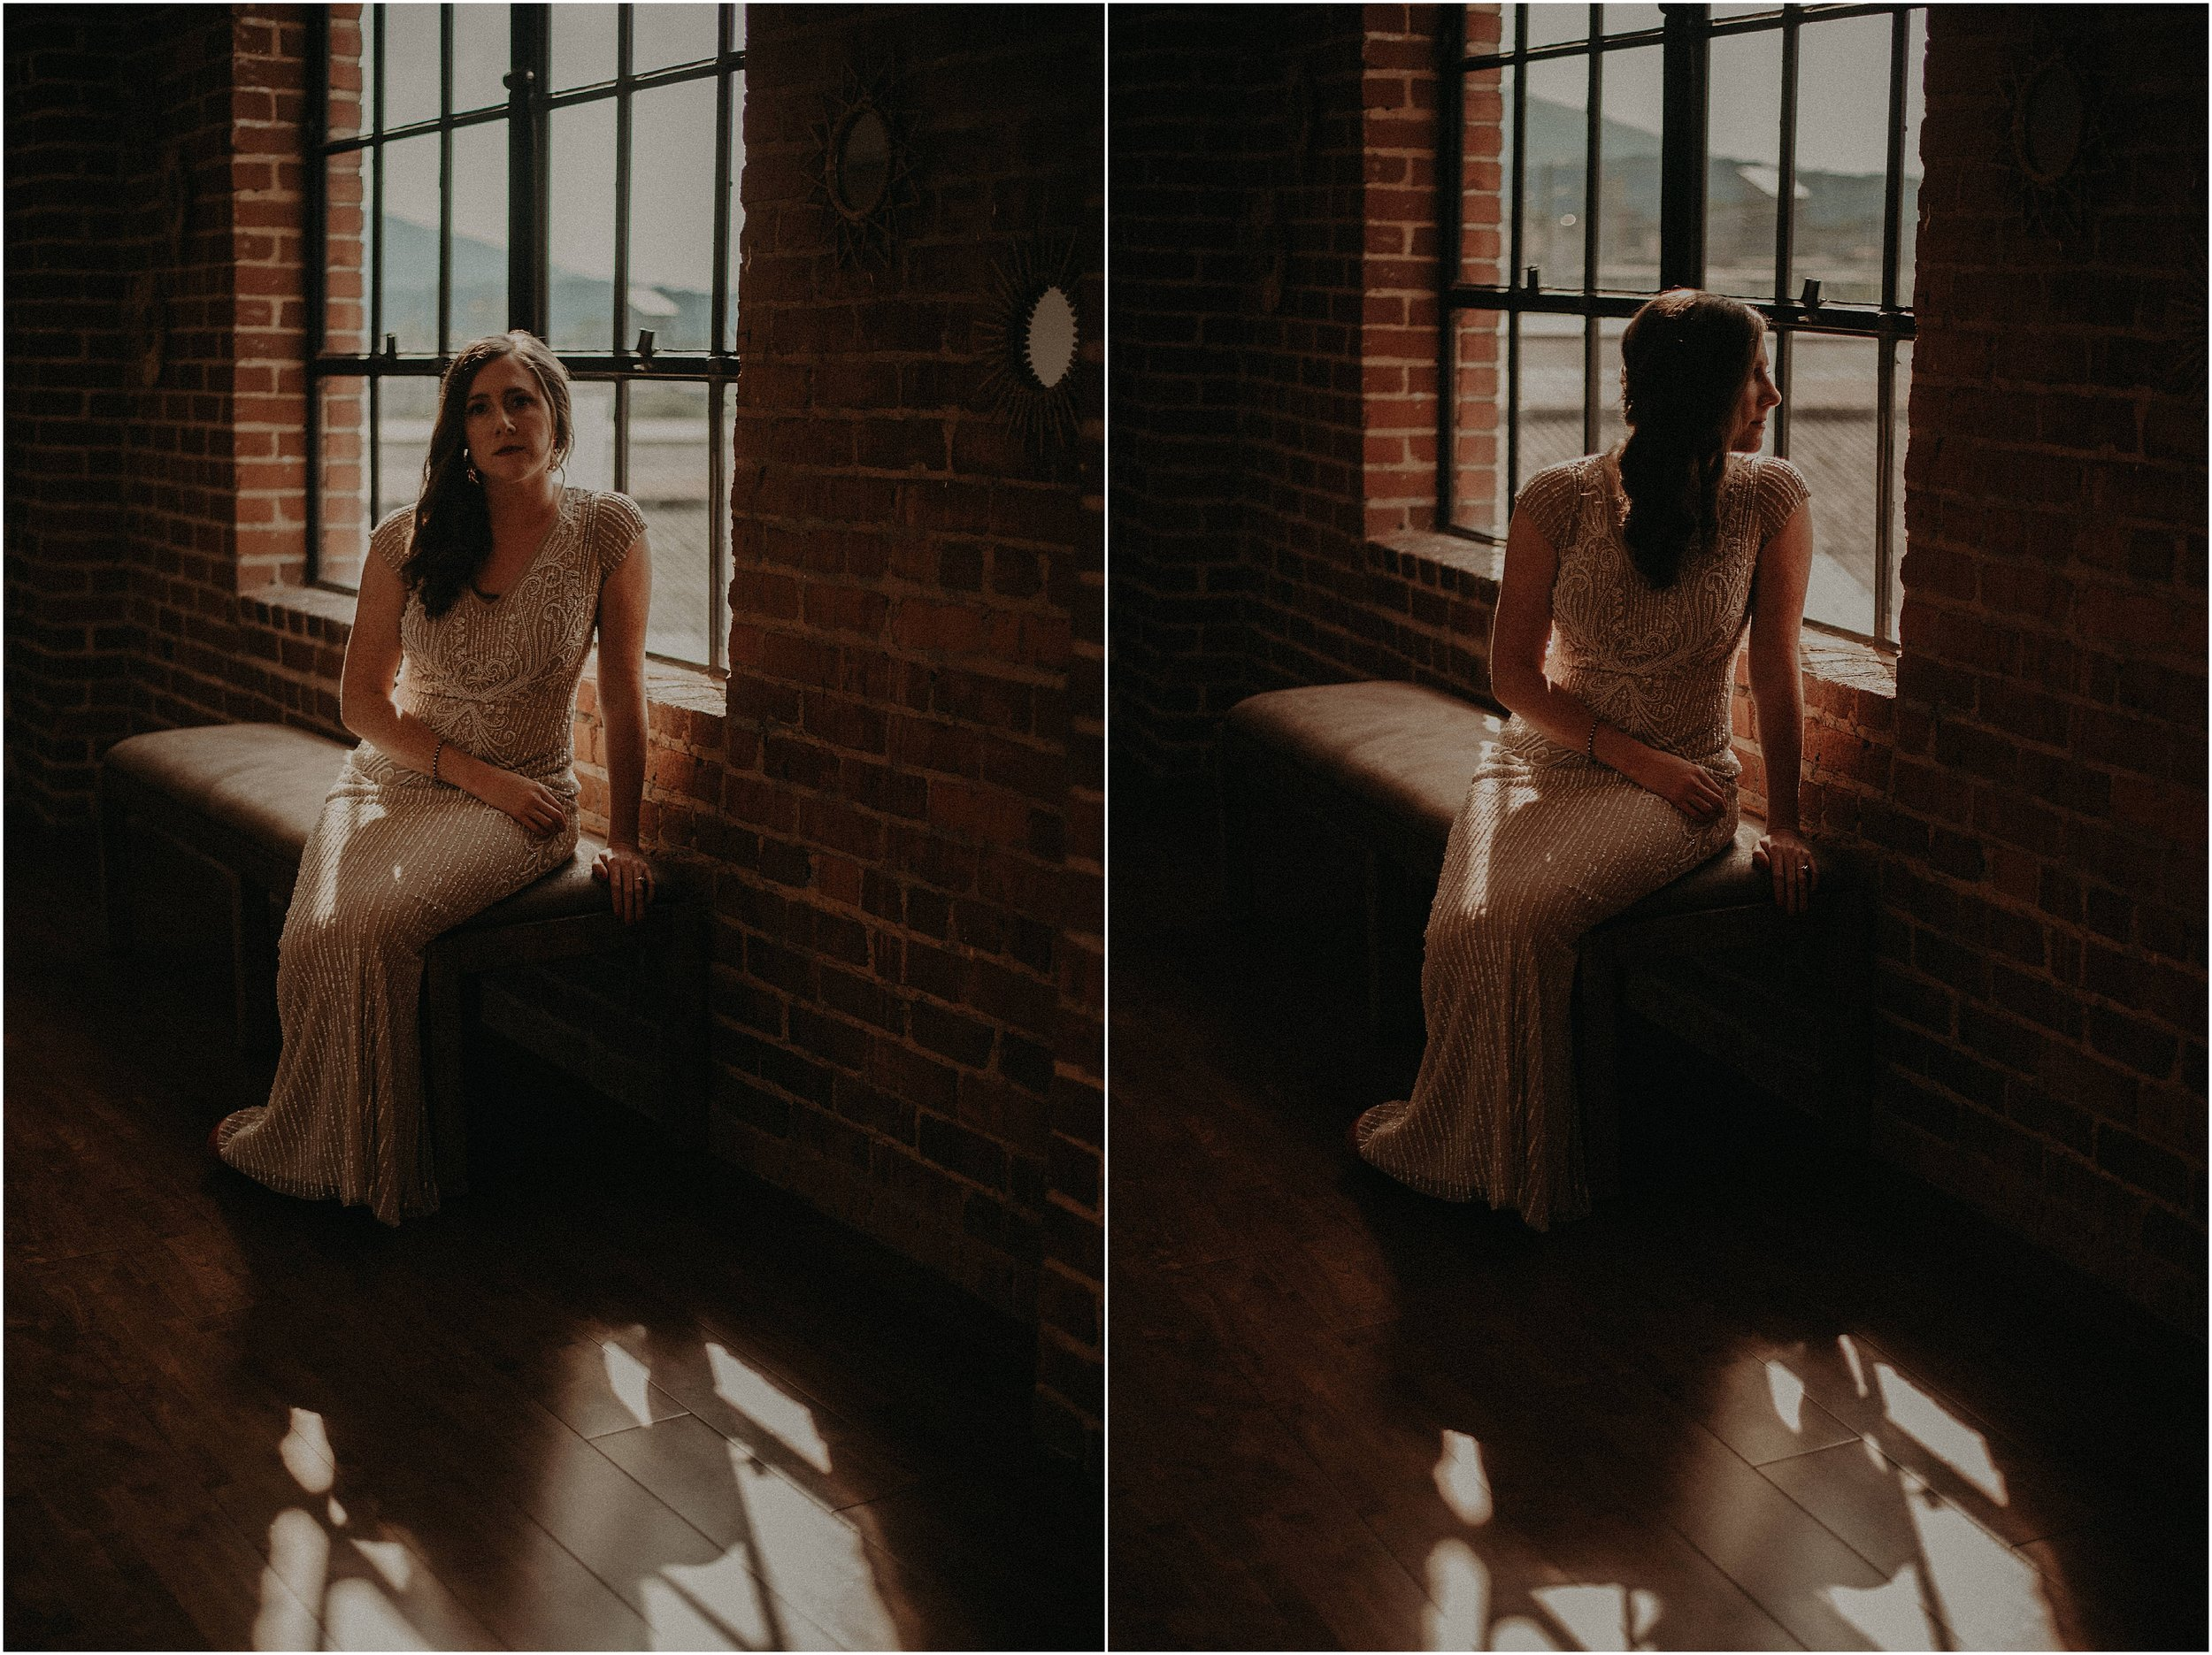 The sun streams through the window behind the bride in the hallway of The Turnbull Building